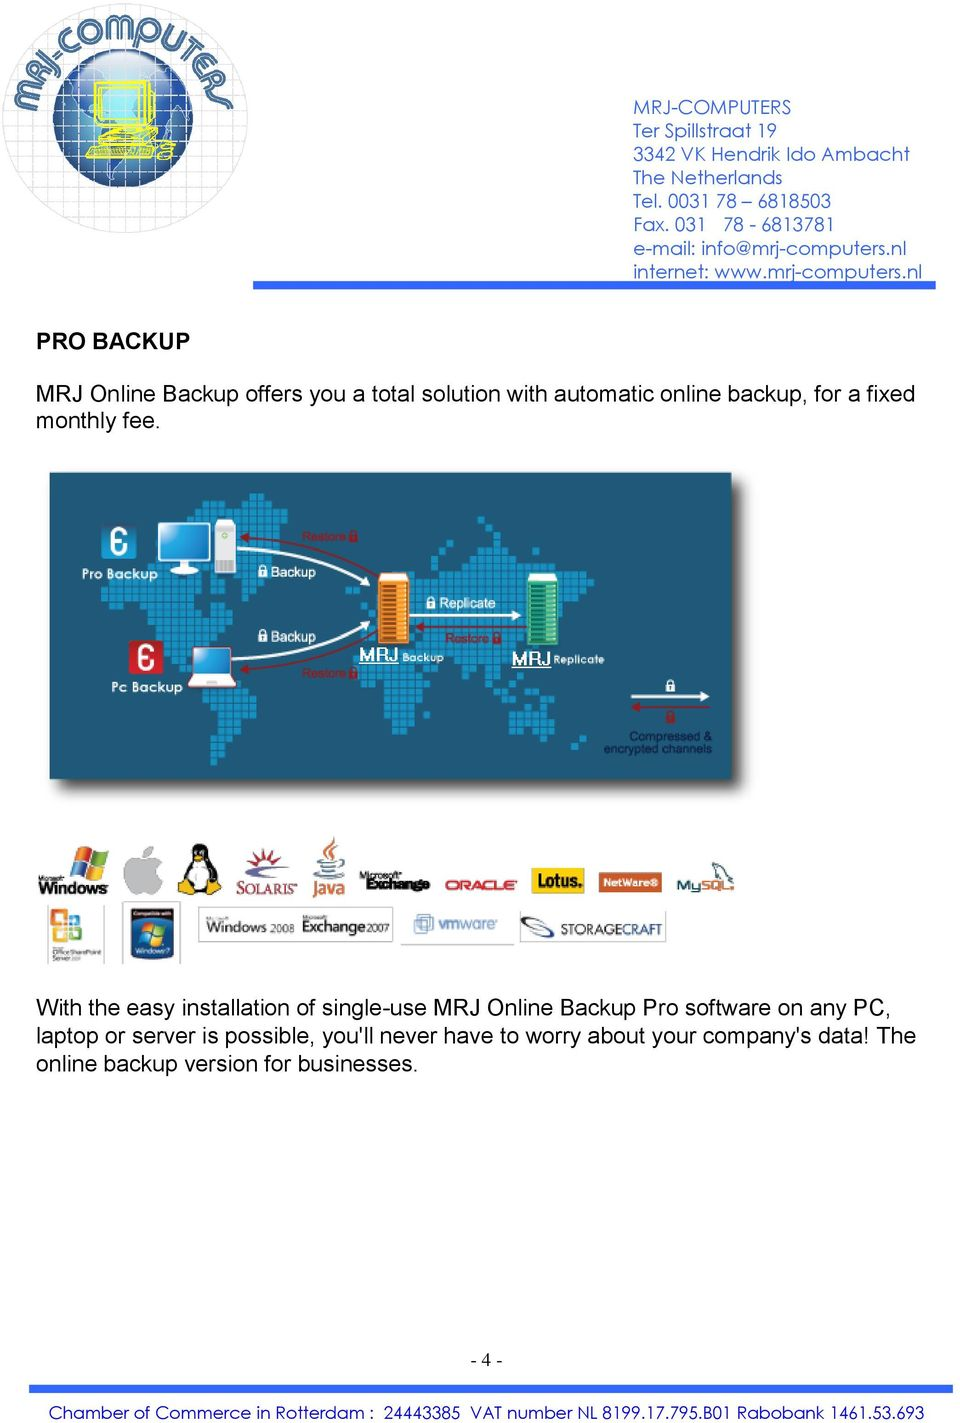 With the easy installation of single-use MRJ Online Backup Pro software on any